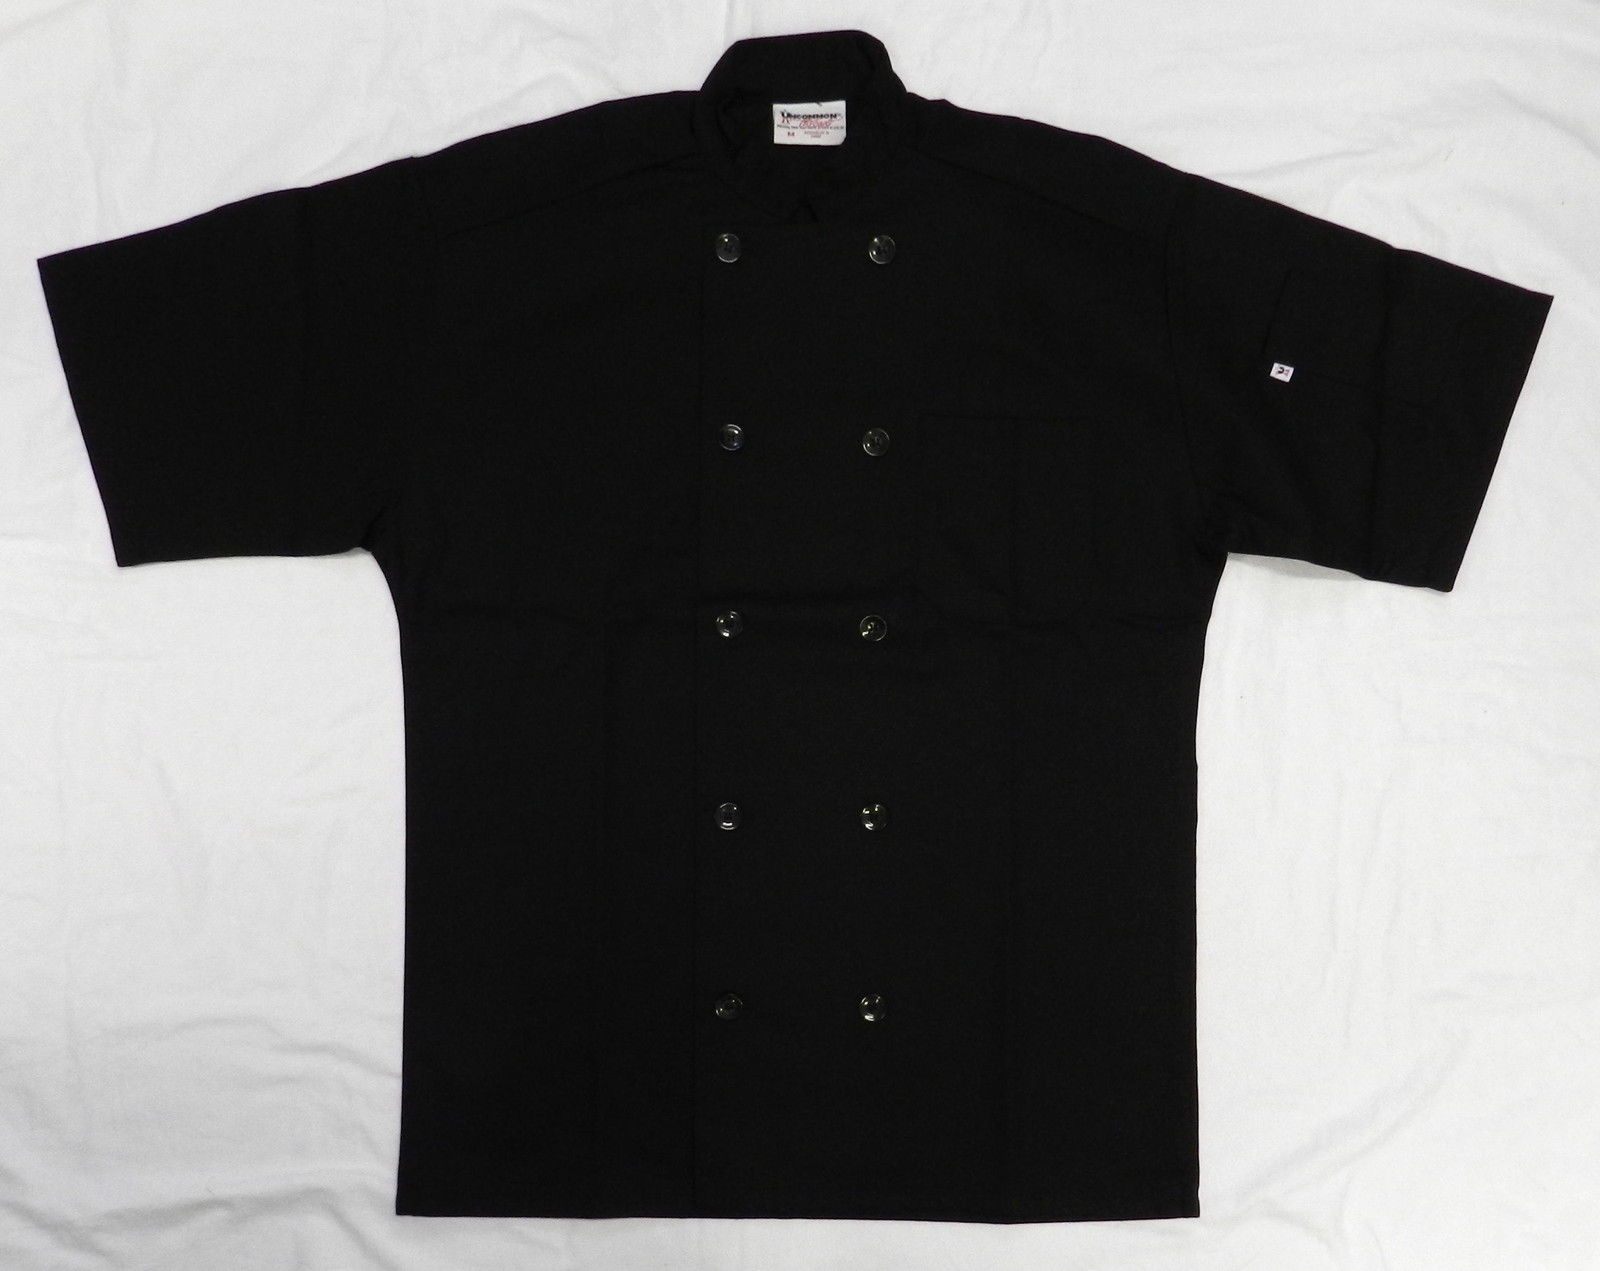 Primary image for Uncommon Threads 415 Restaurant Uniform S/S Chef Coat Jacket Black M New